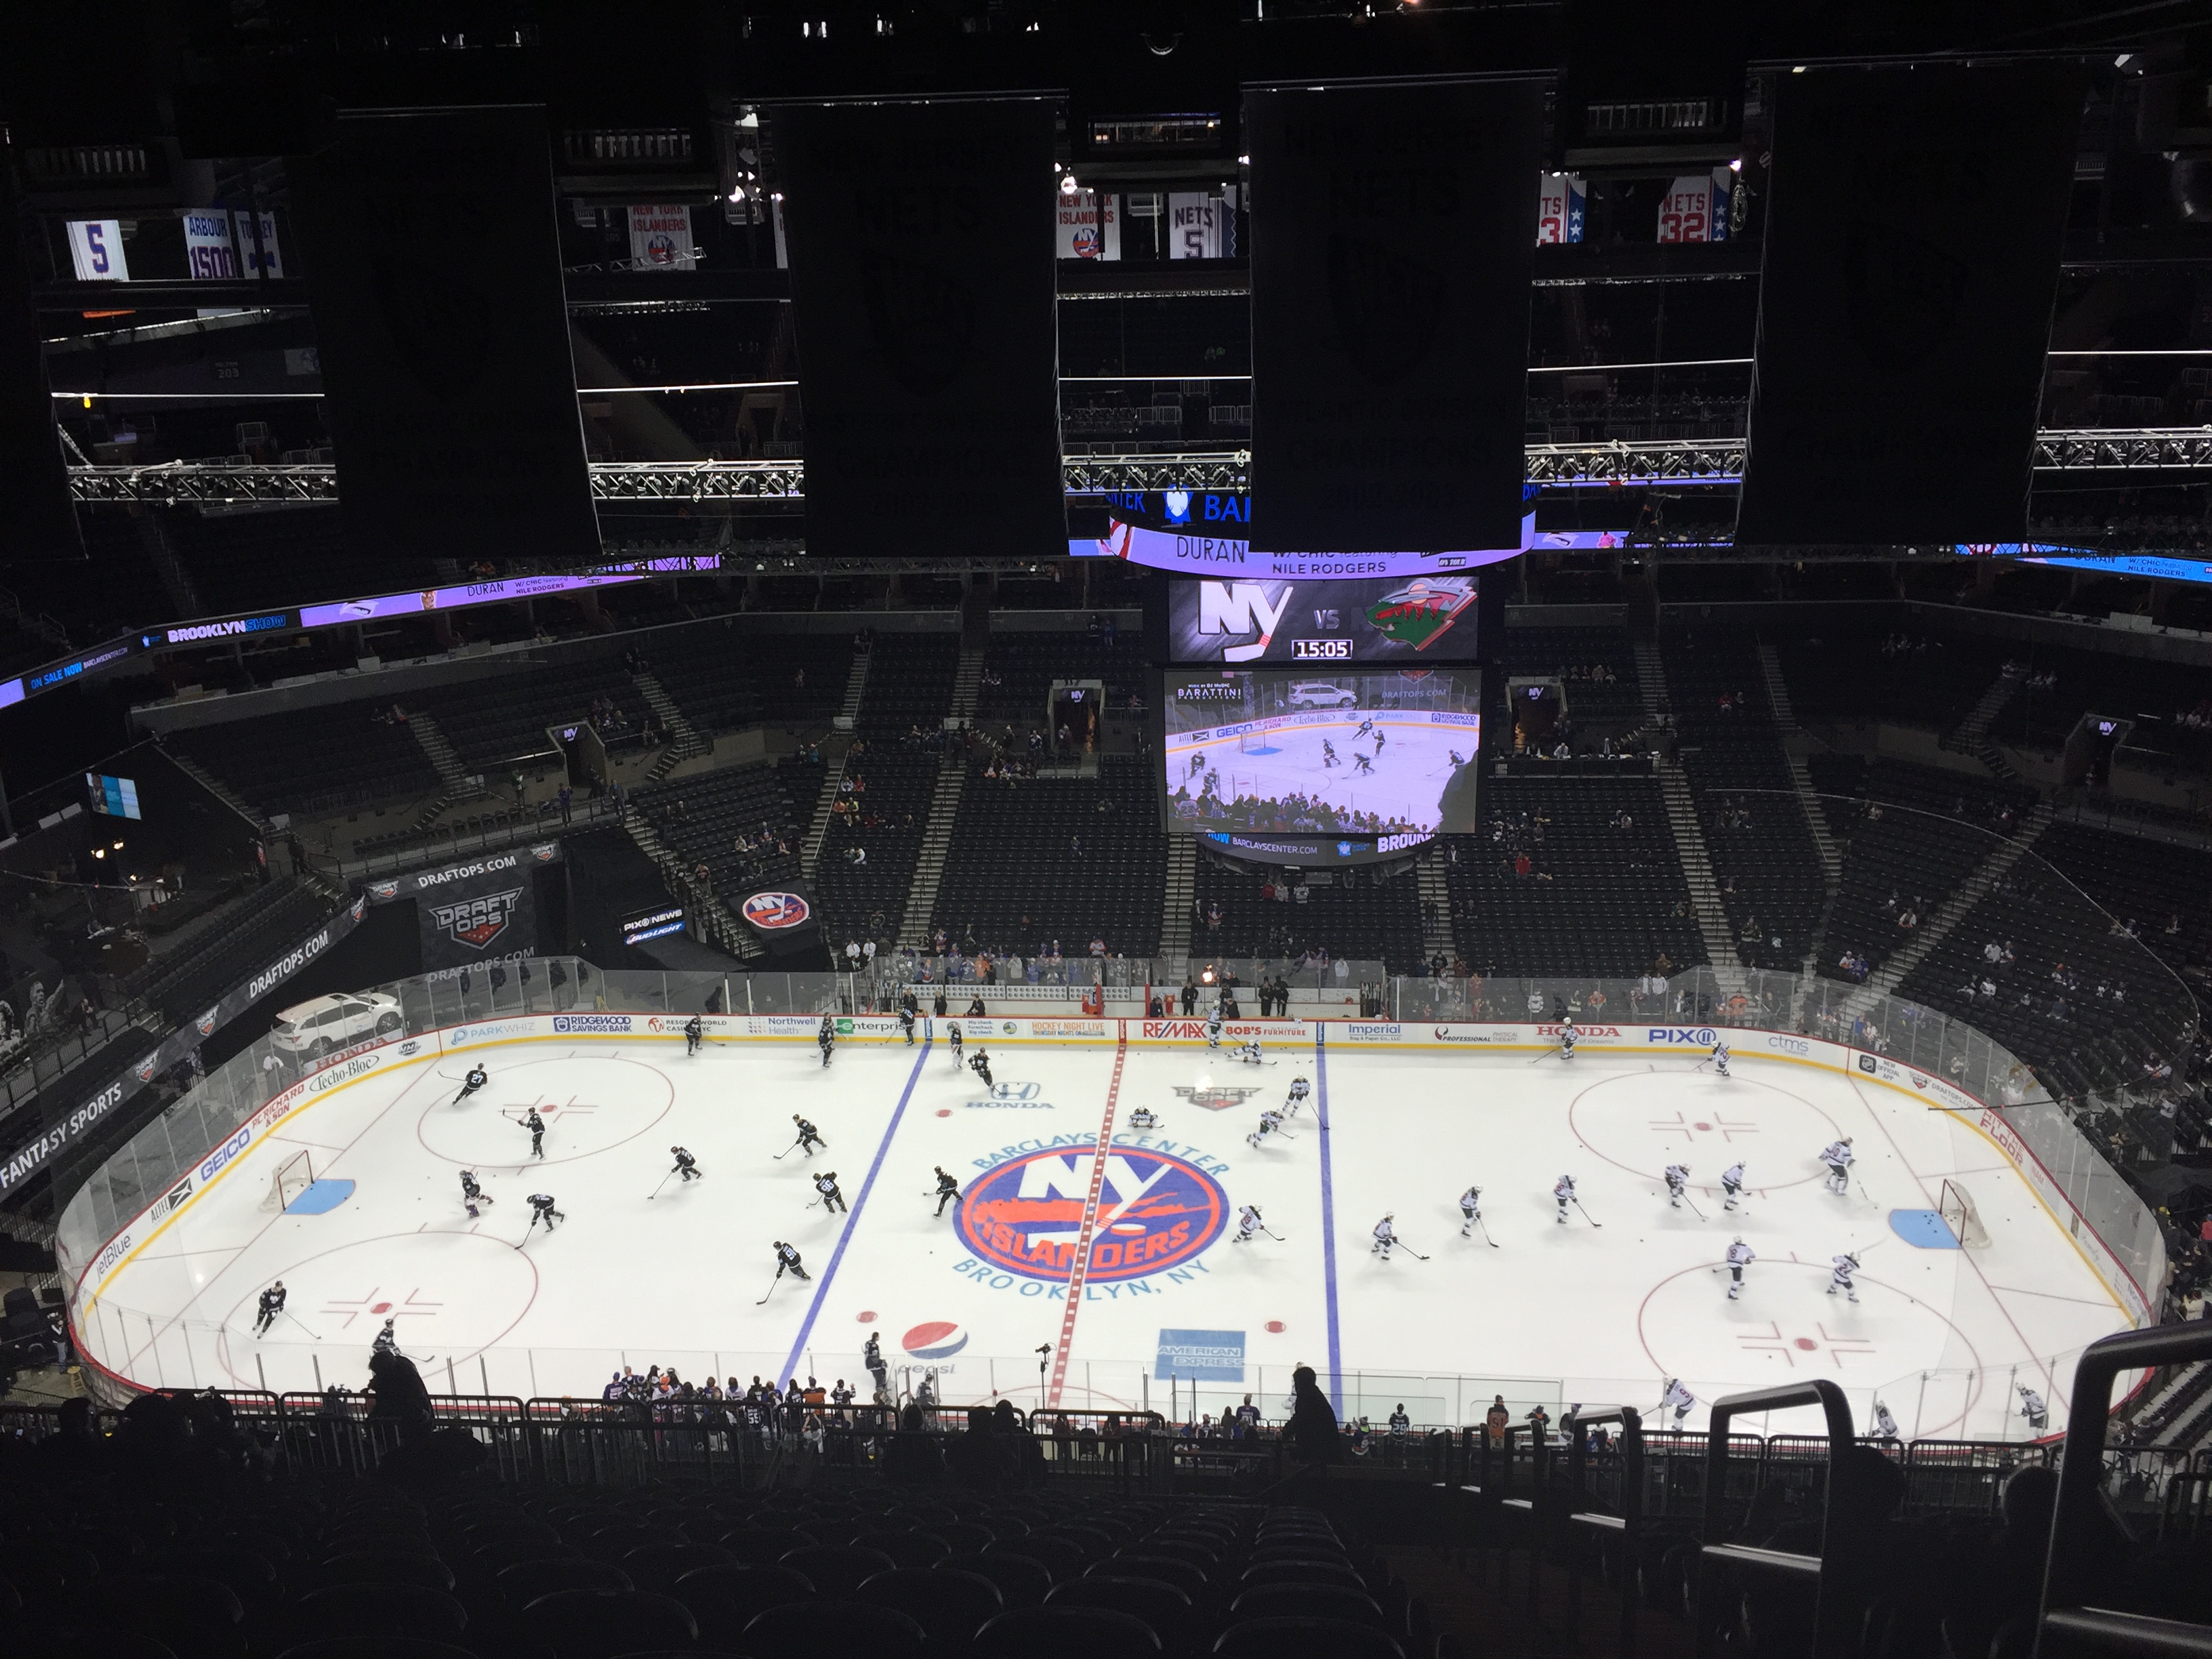 Barclays Center rink